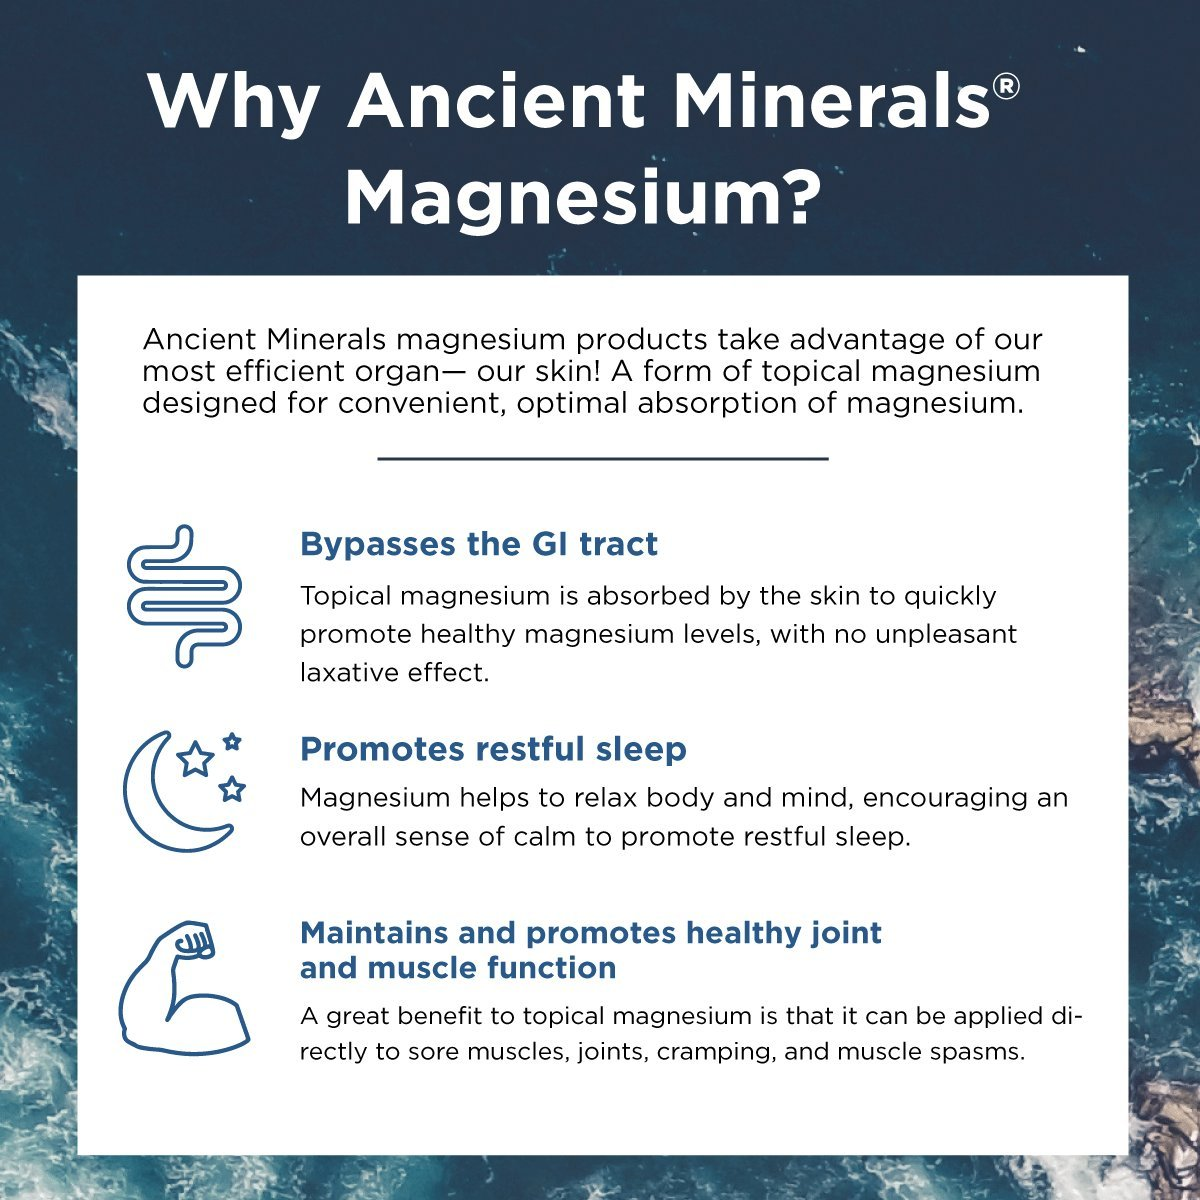 Ancient Minerals Magnesium Lotion of Pure Genuine Zechstein Magnesium Chloride - Best uesd for Topical Skin Application on Sensitive Skin(5oz) by Ancient Minerals (Image #2)